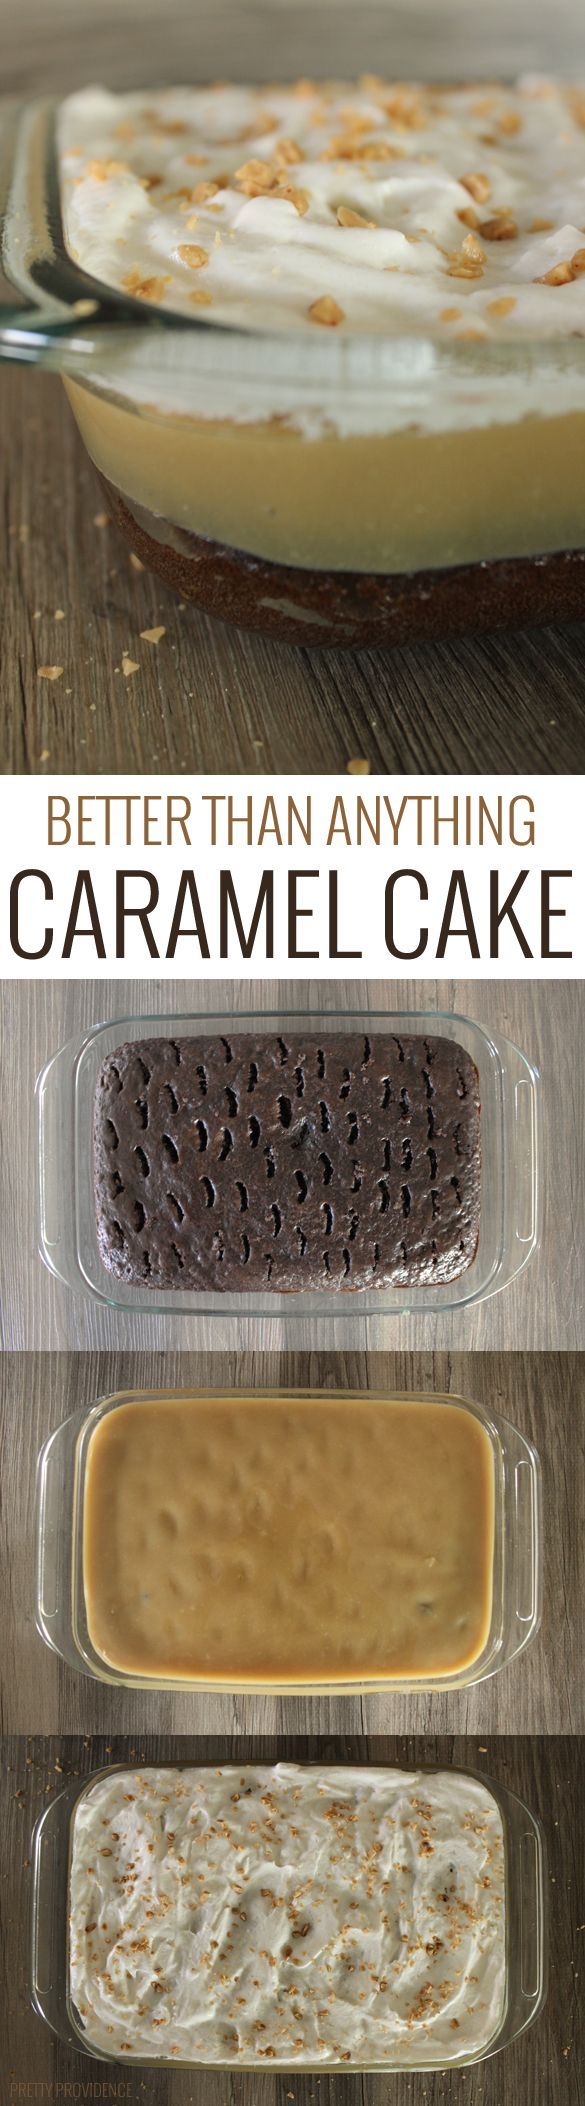 This cake is called better than anything cake because it is literally so hard to control yourself around it! I mean, it is so good, it is literally impossible to stay away, so make sure make it for a party or gathering so it's gone quick! Haha